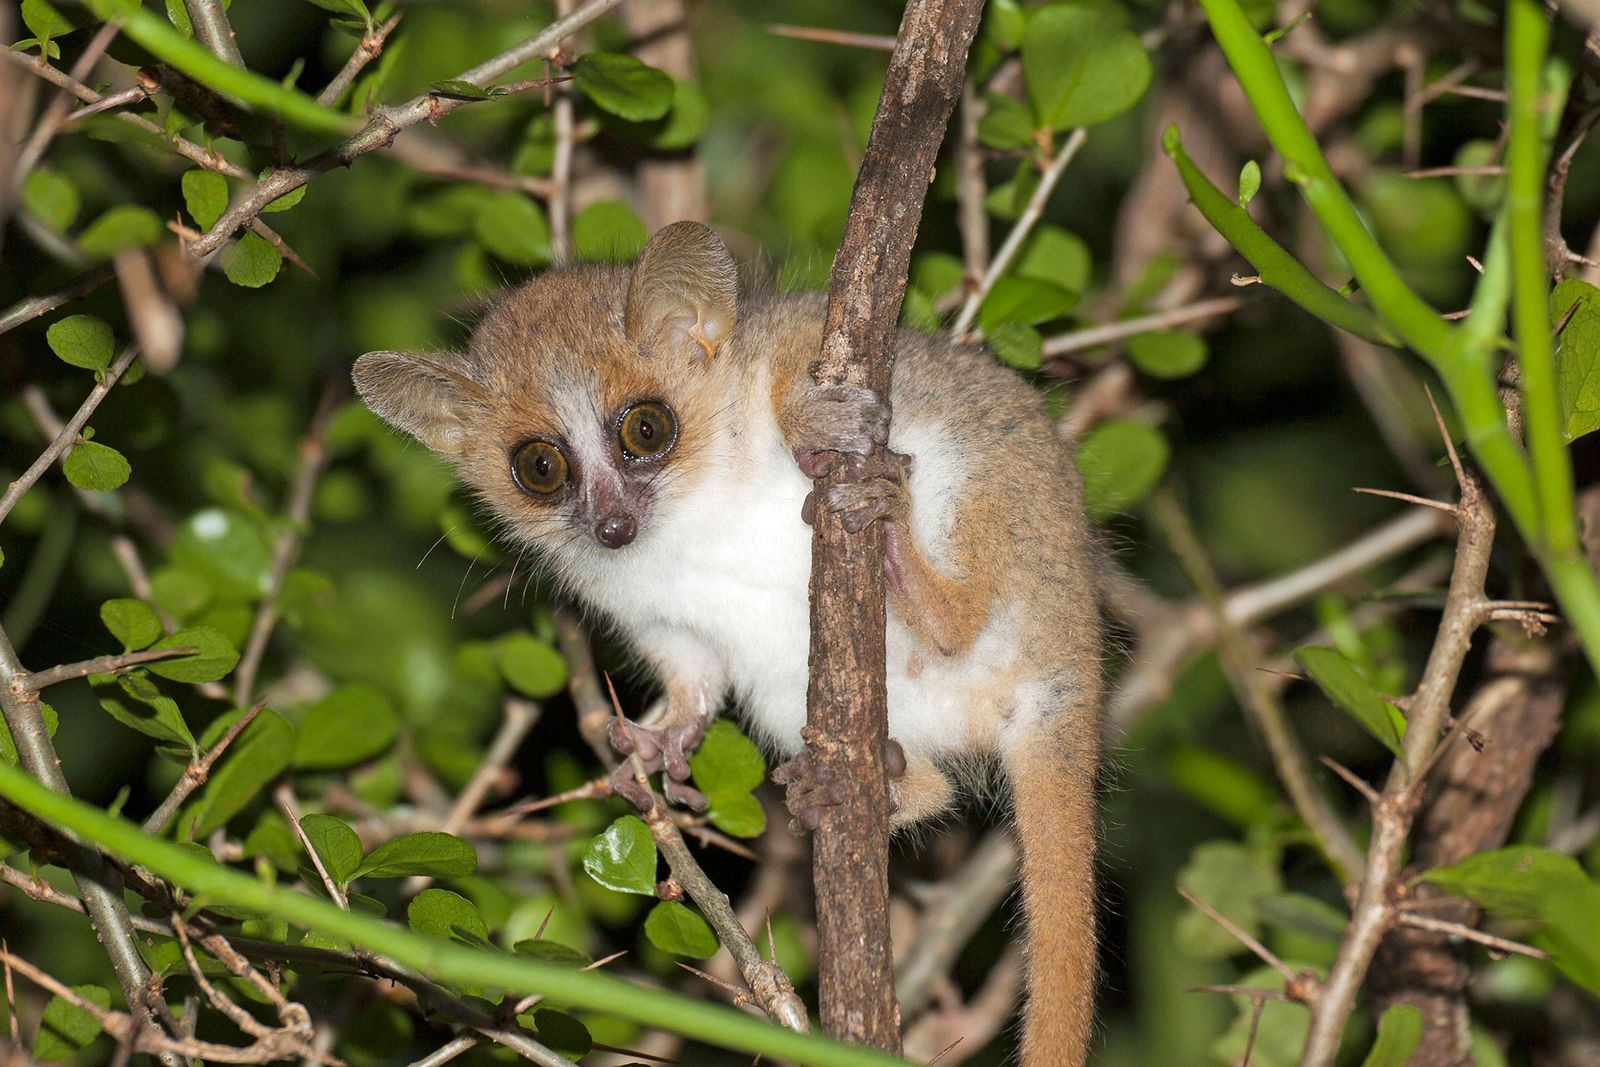 The Surprising Reason Tiny Lemurs 'Grow' Their Own Gardens